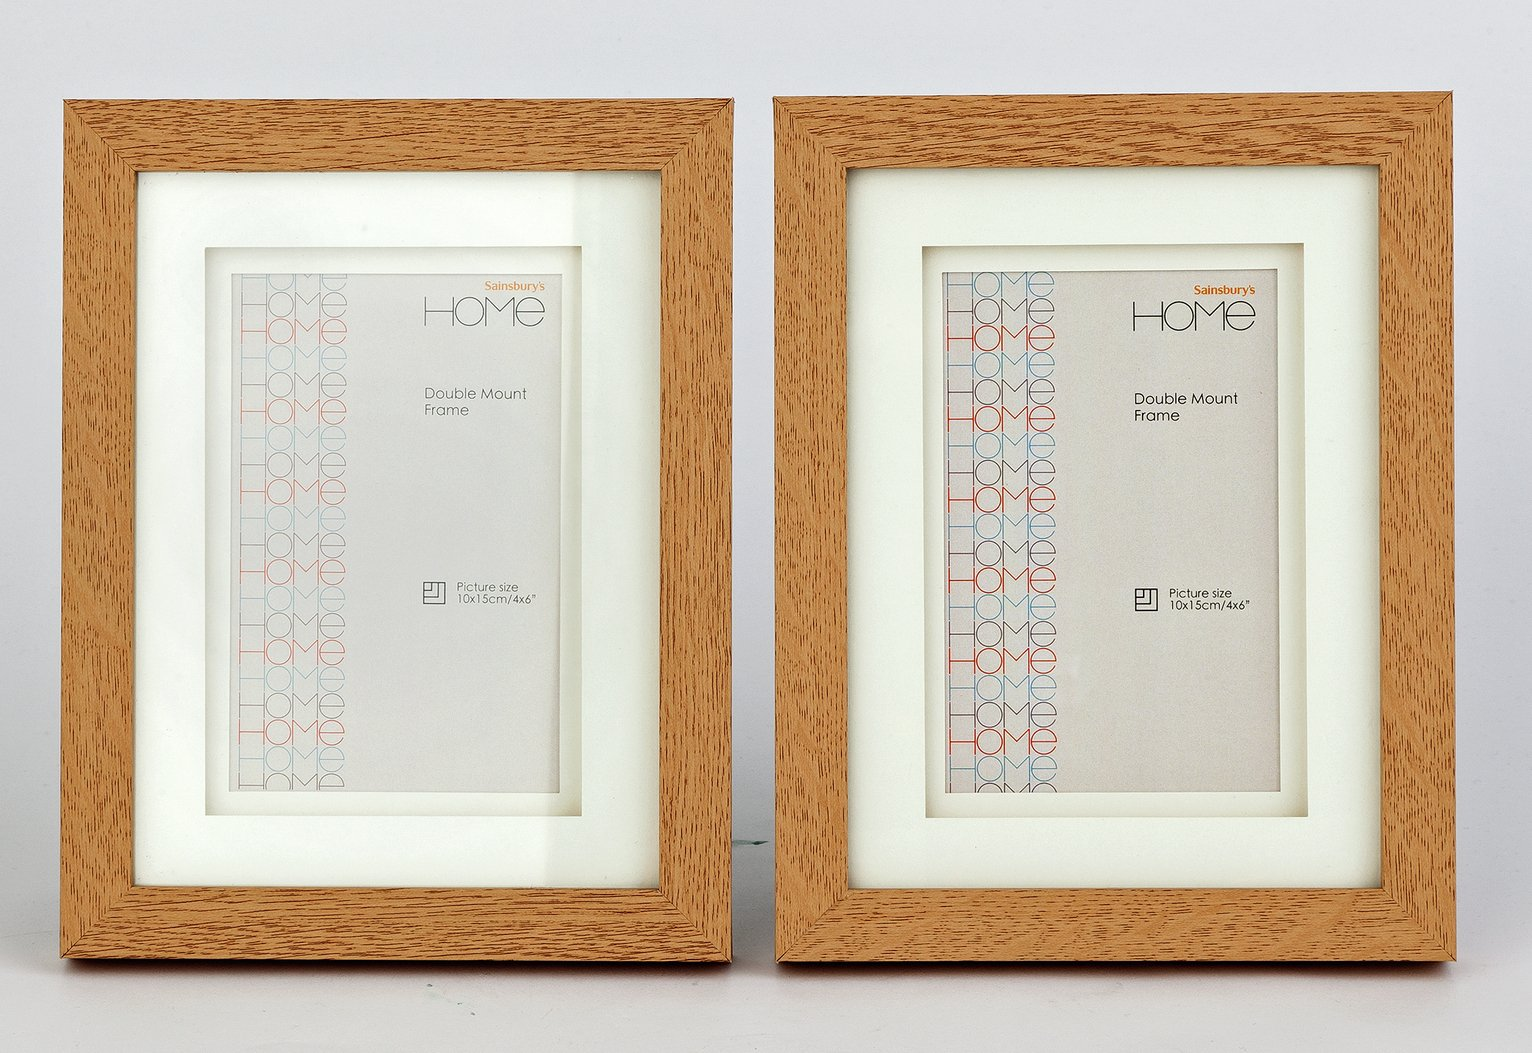 30 x 40 inch frame set of 4x6 inch double mount frames oak effect results for 30x40 inch frame